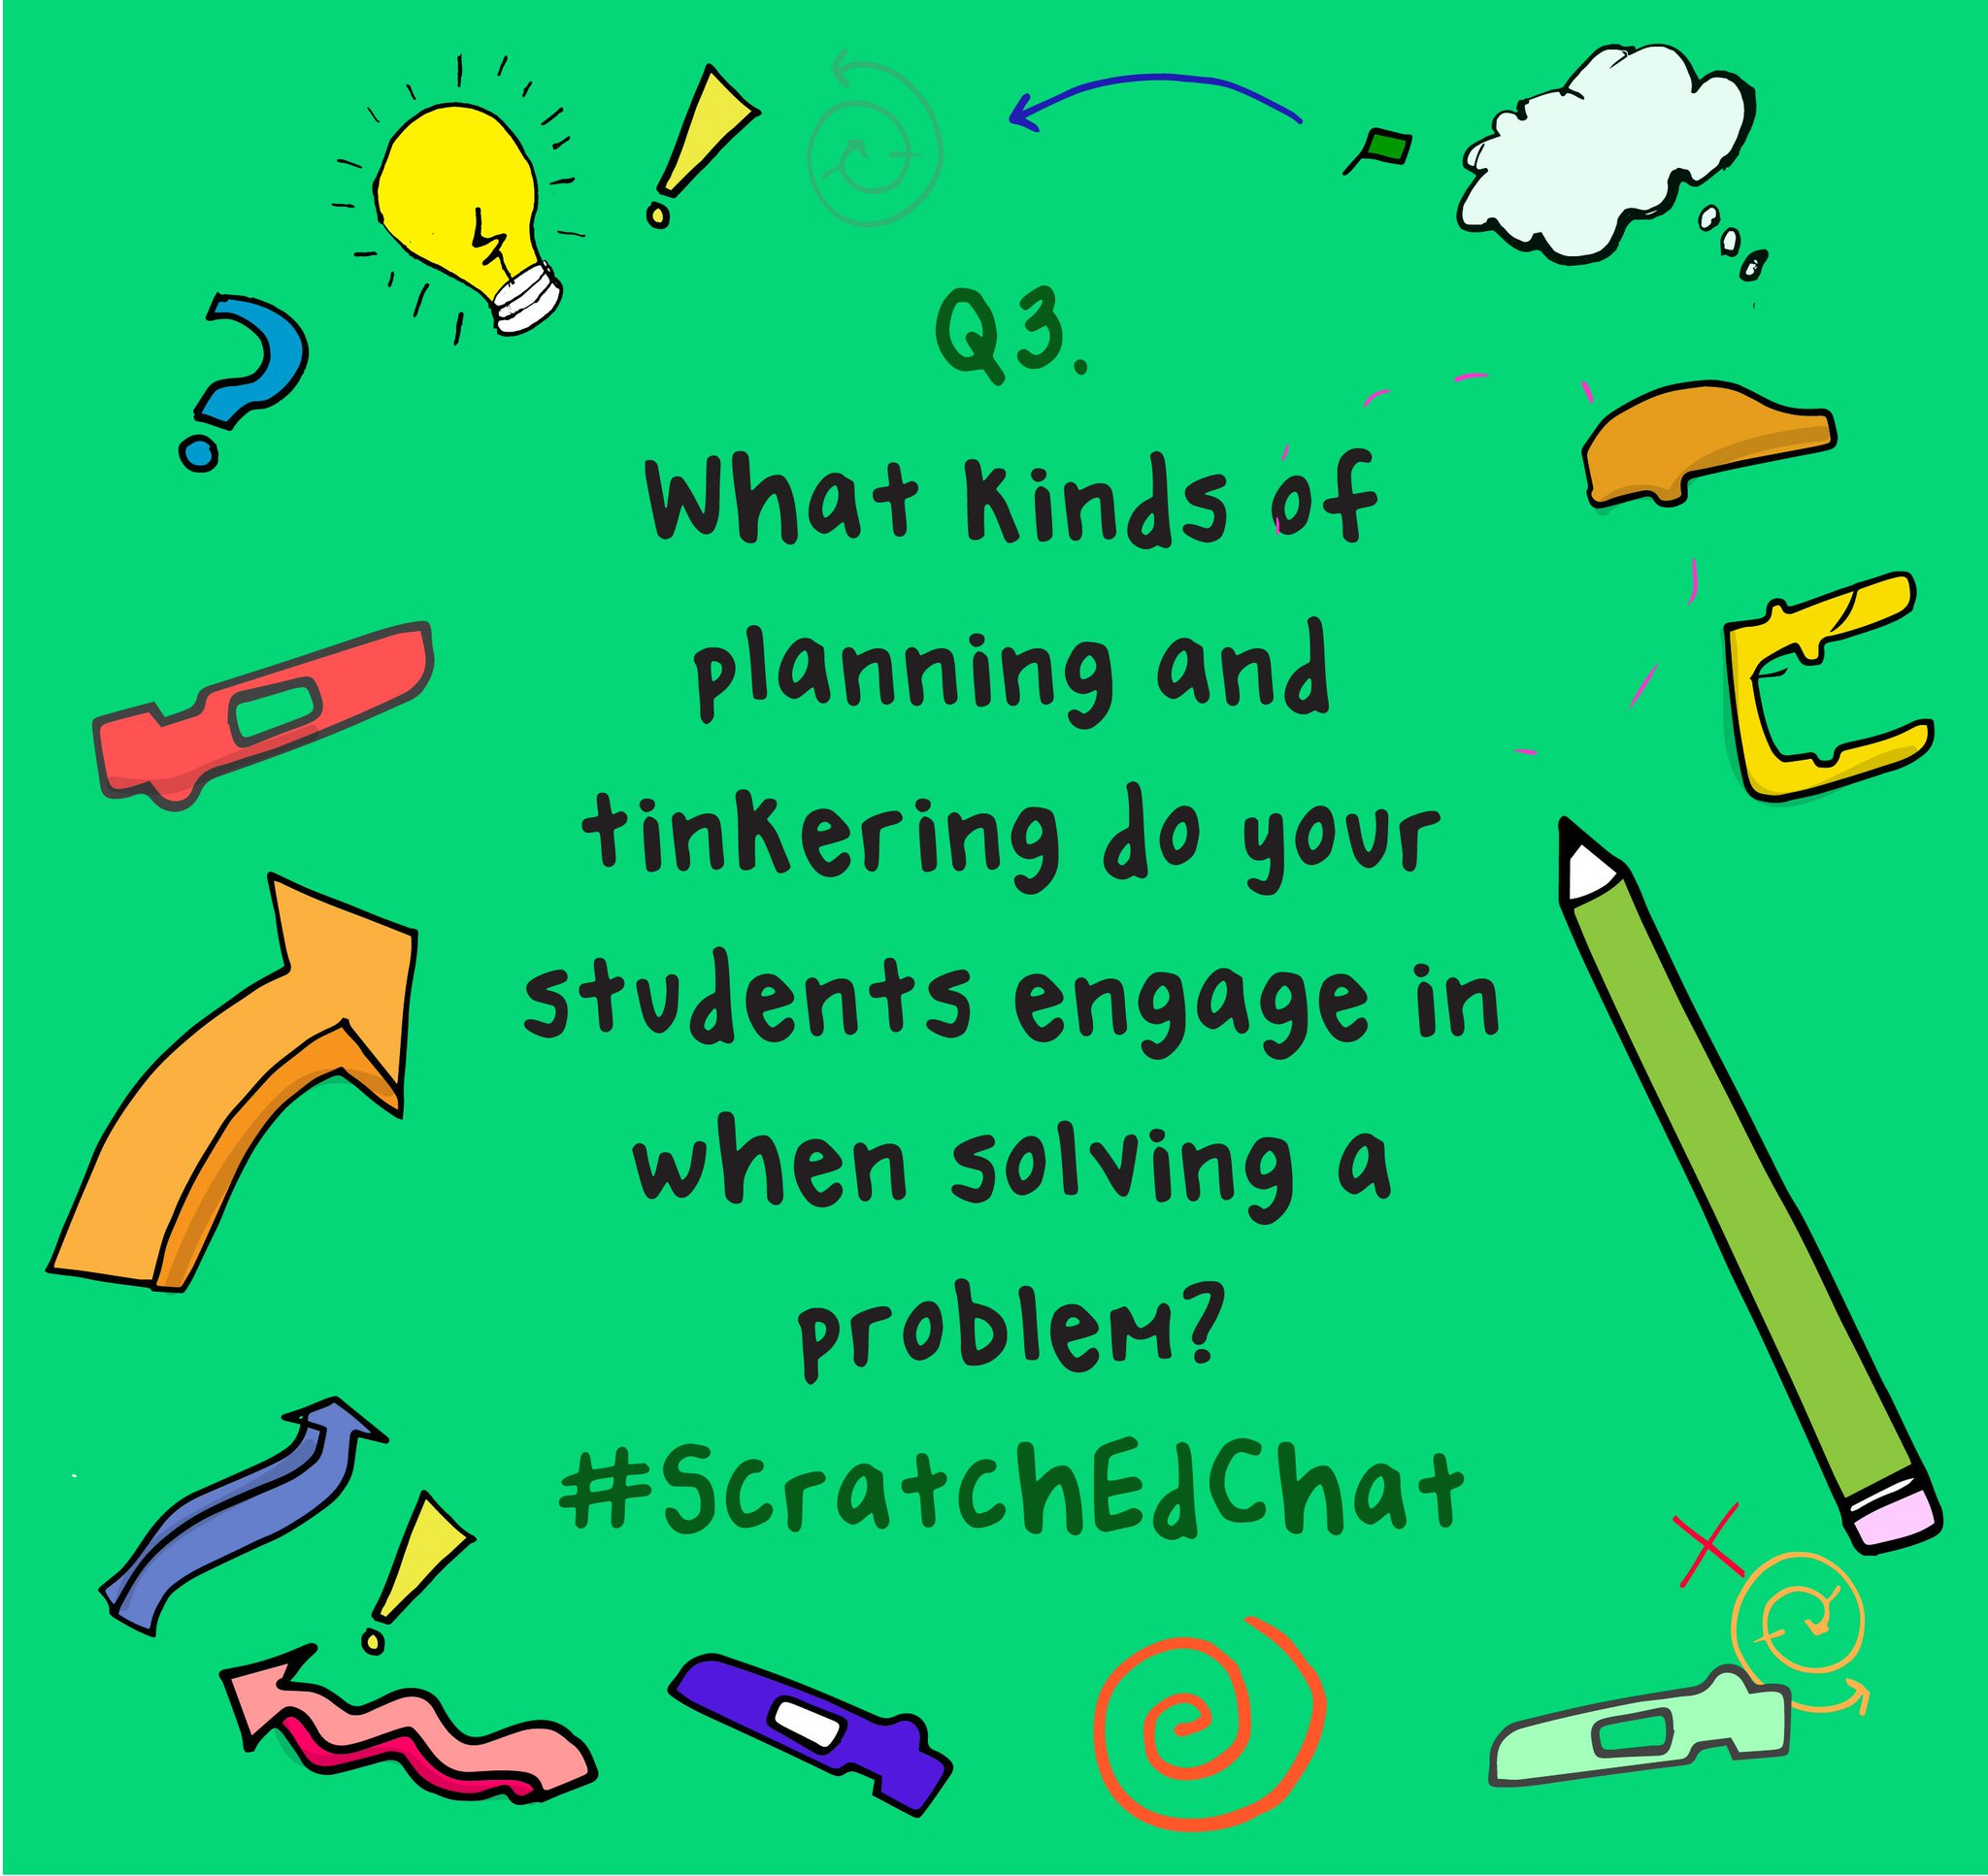 Q3. What kinds of planning and tinkering do your students engage in when solving a problem? #ScratchEdChat https://t.co/SxOyL6mmUi